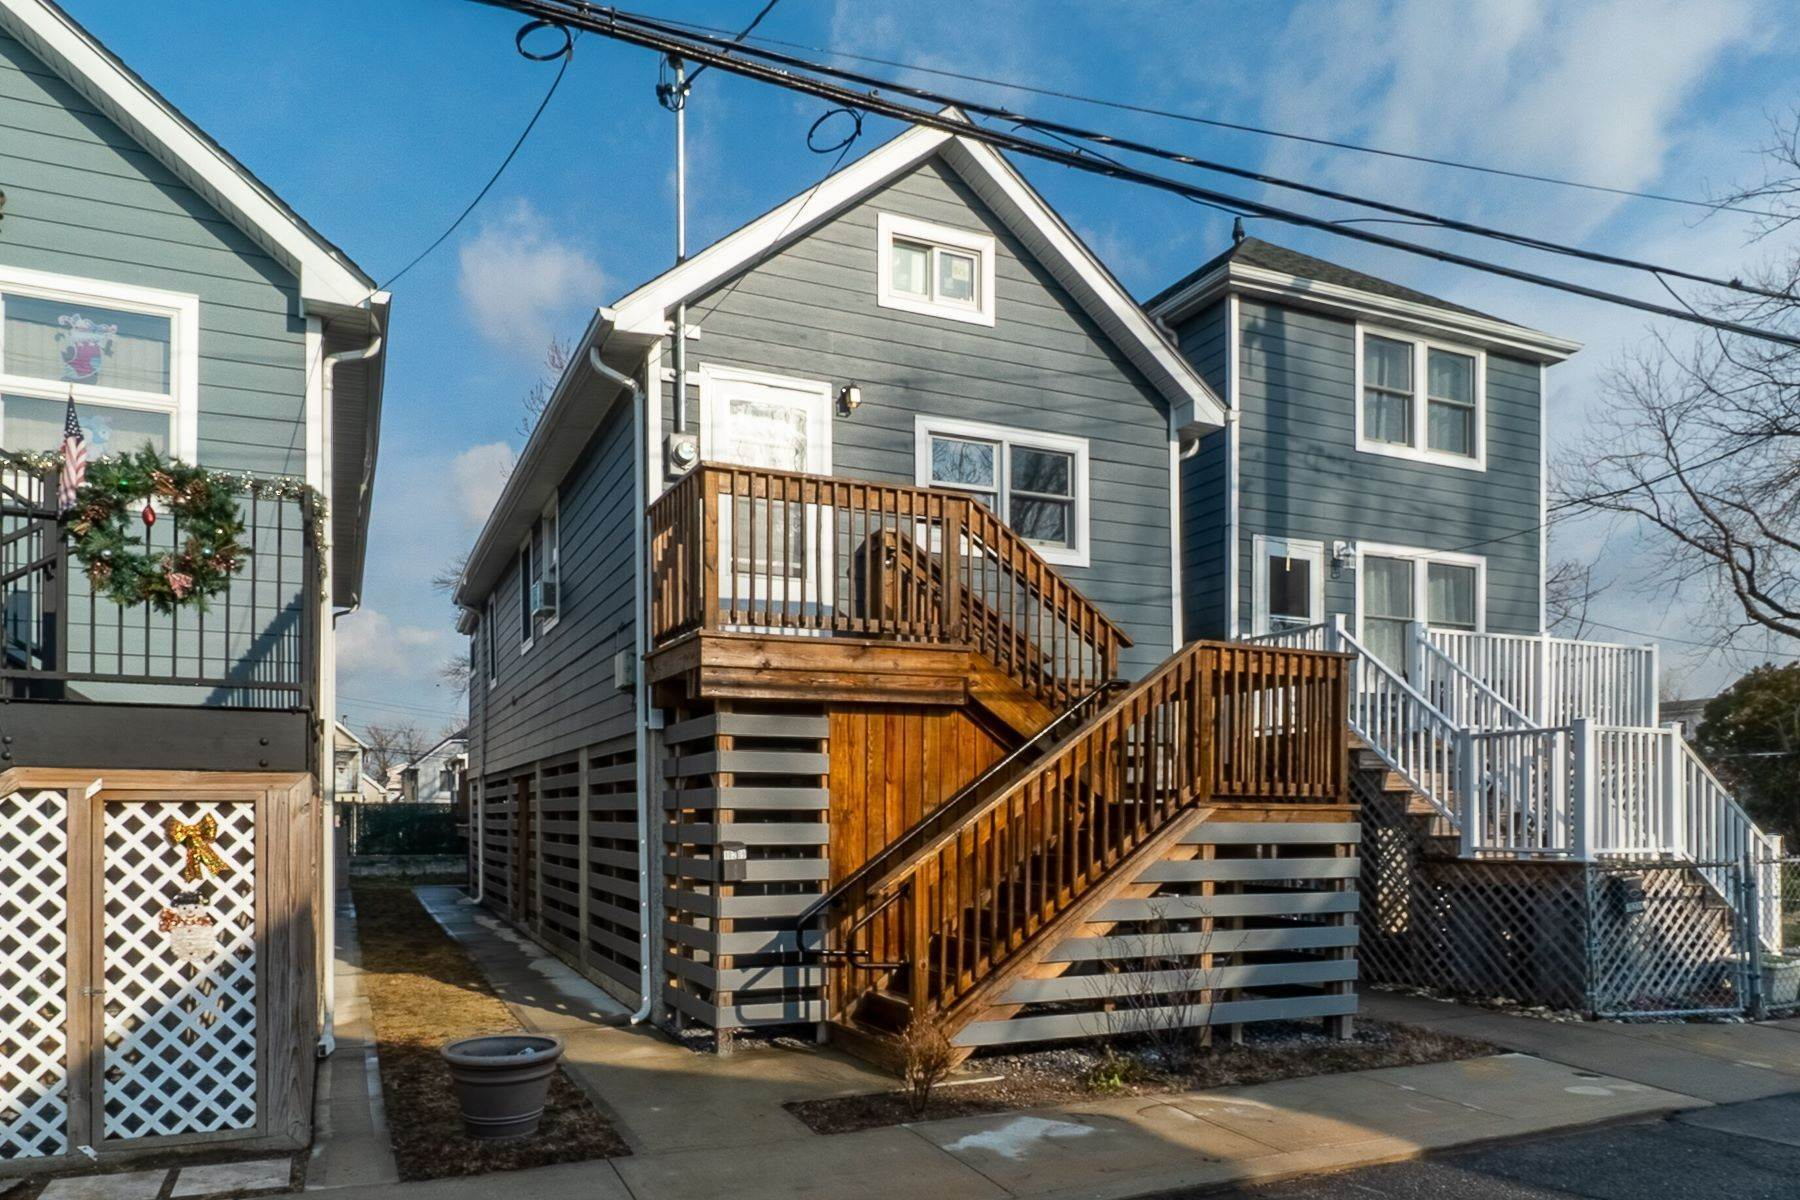 Single Family Homes for Sale at 102-09 163rd Road, Howard Beach, Ny, 11414 102-09 163rd Road Howard Beach, New York 11414 United States